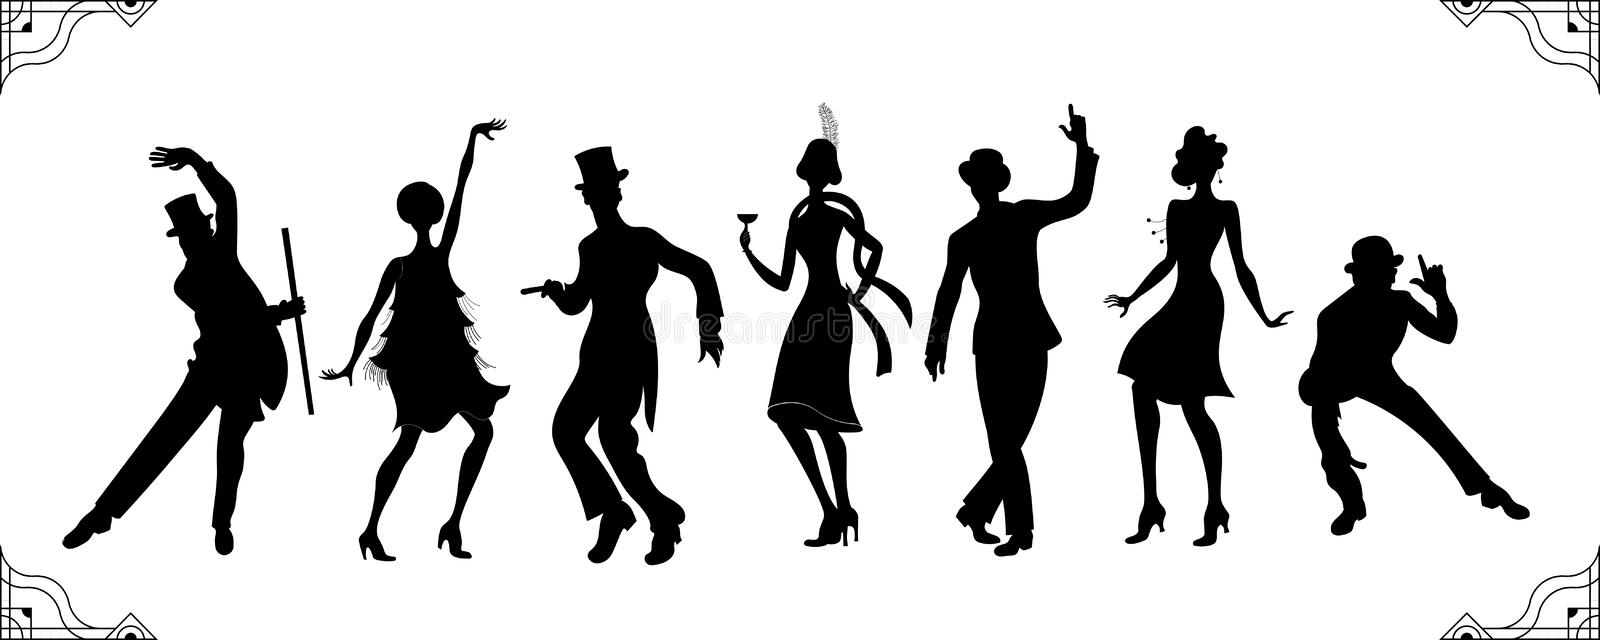 Charleston Party.black silhouette man and woman gold silhouette .Gatsby style set. Group of retro man dancing charleston.Vintage royalty free illustration